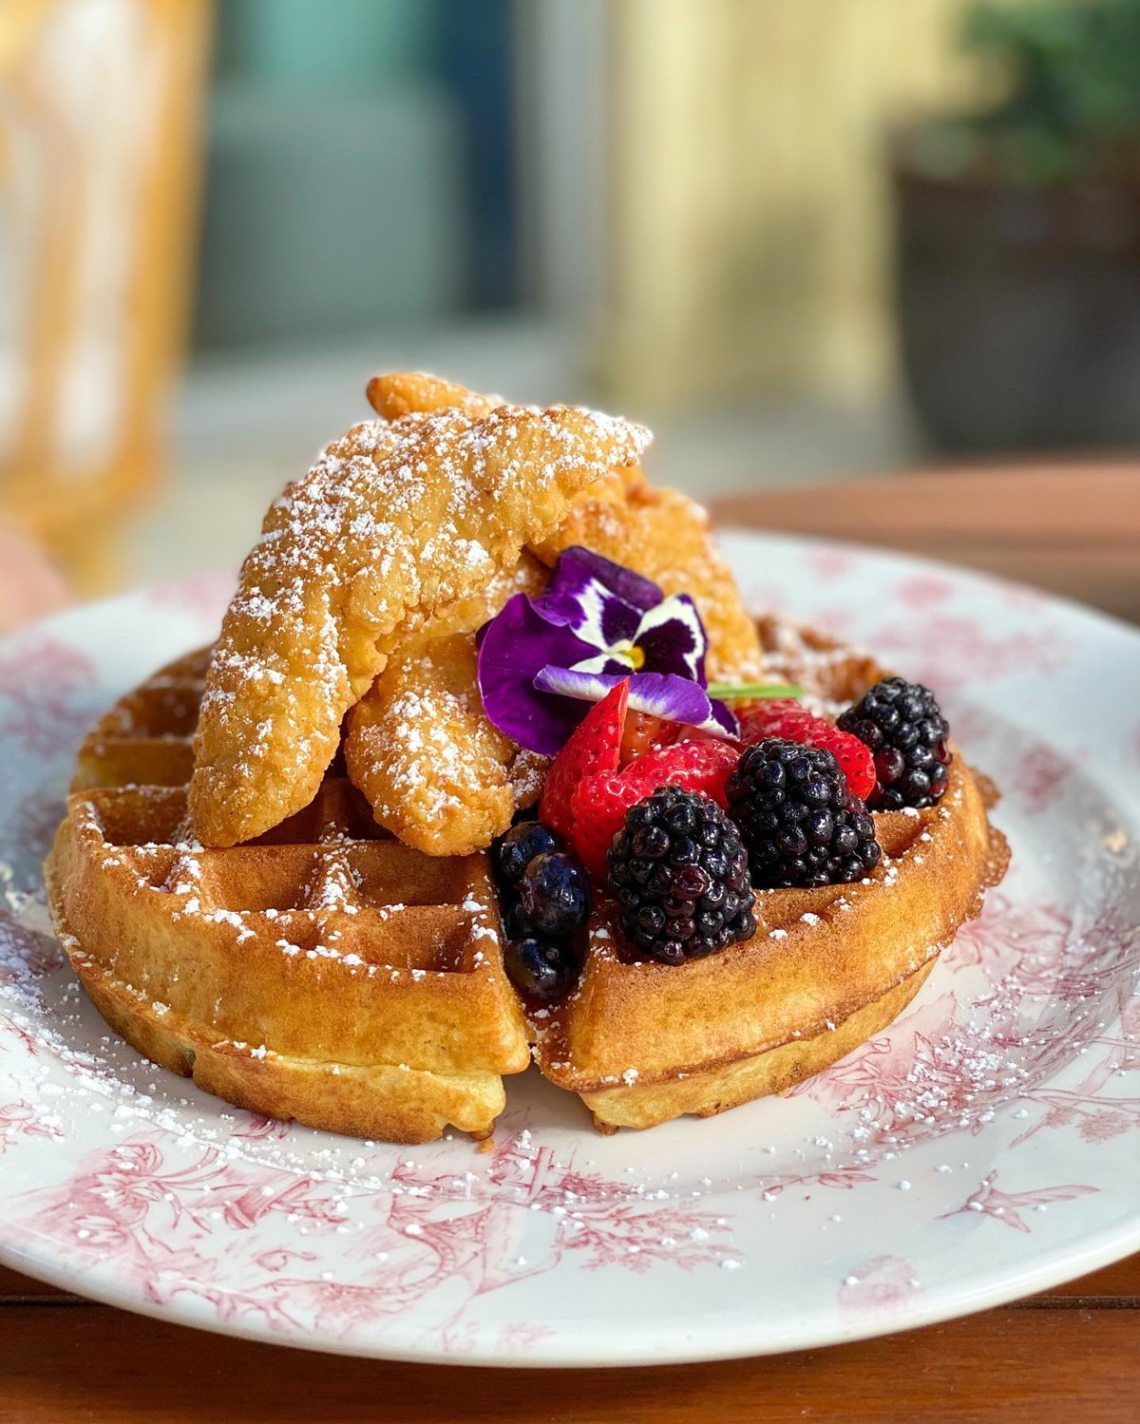 Miami Brunch Hostspot Little Hen in Midtown Miami with Instagrammable location and food chicken and waffles